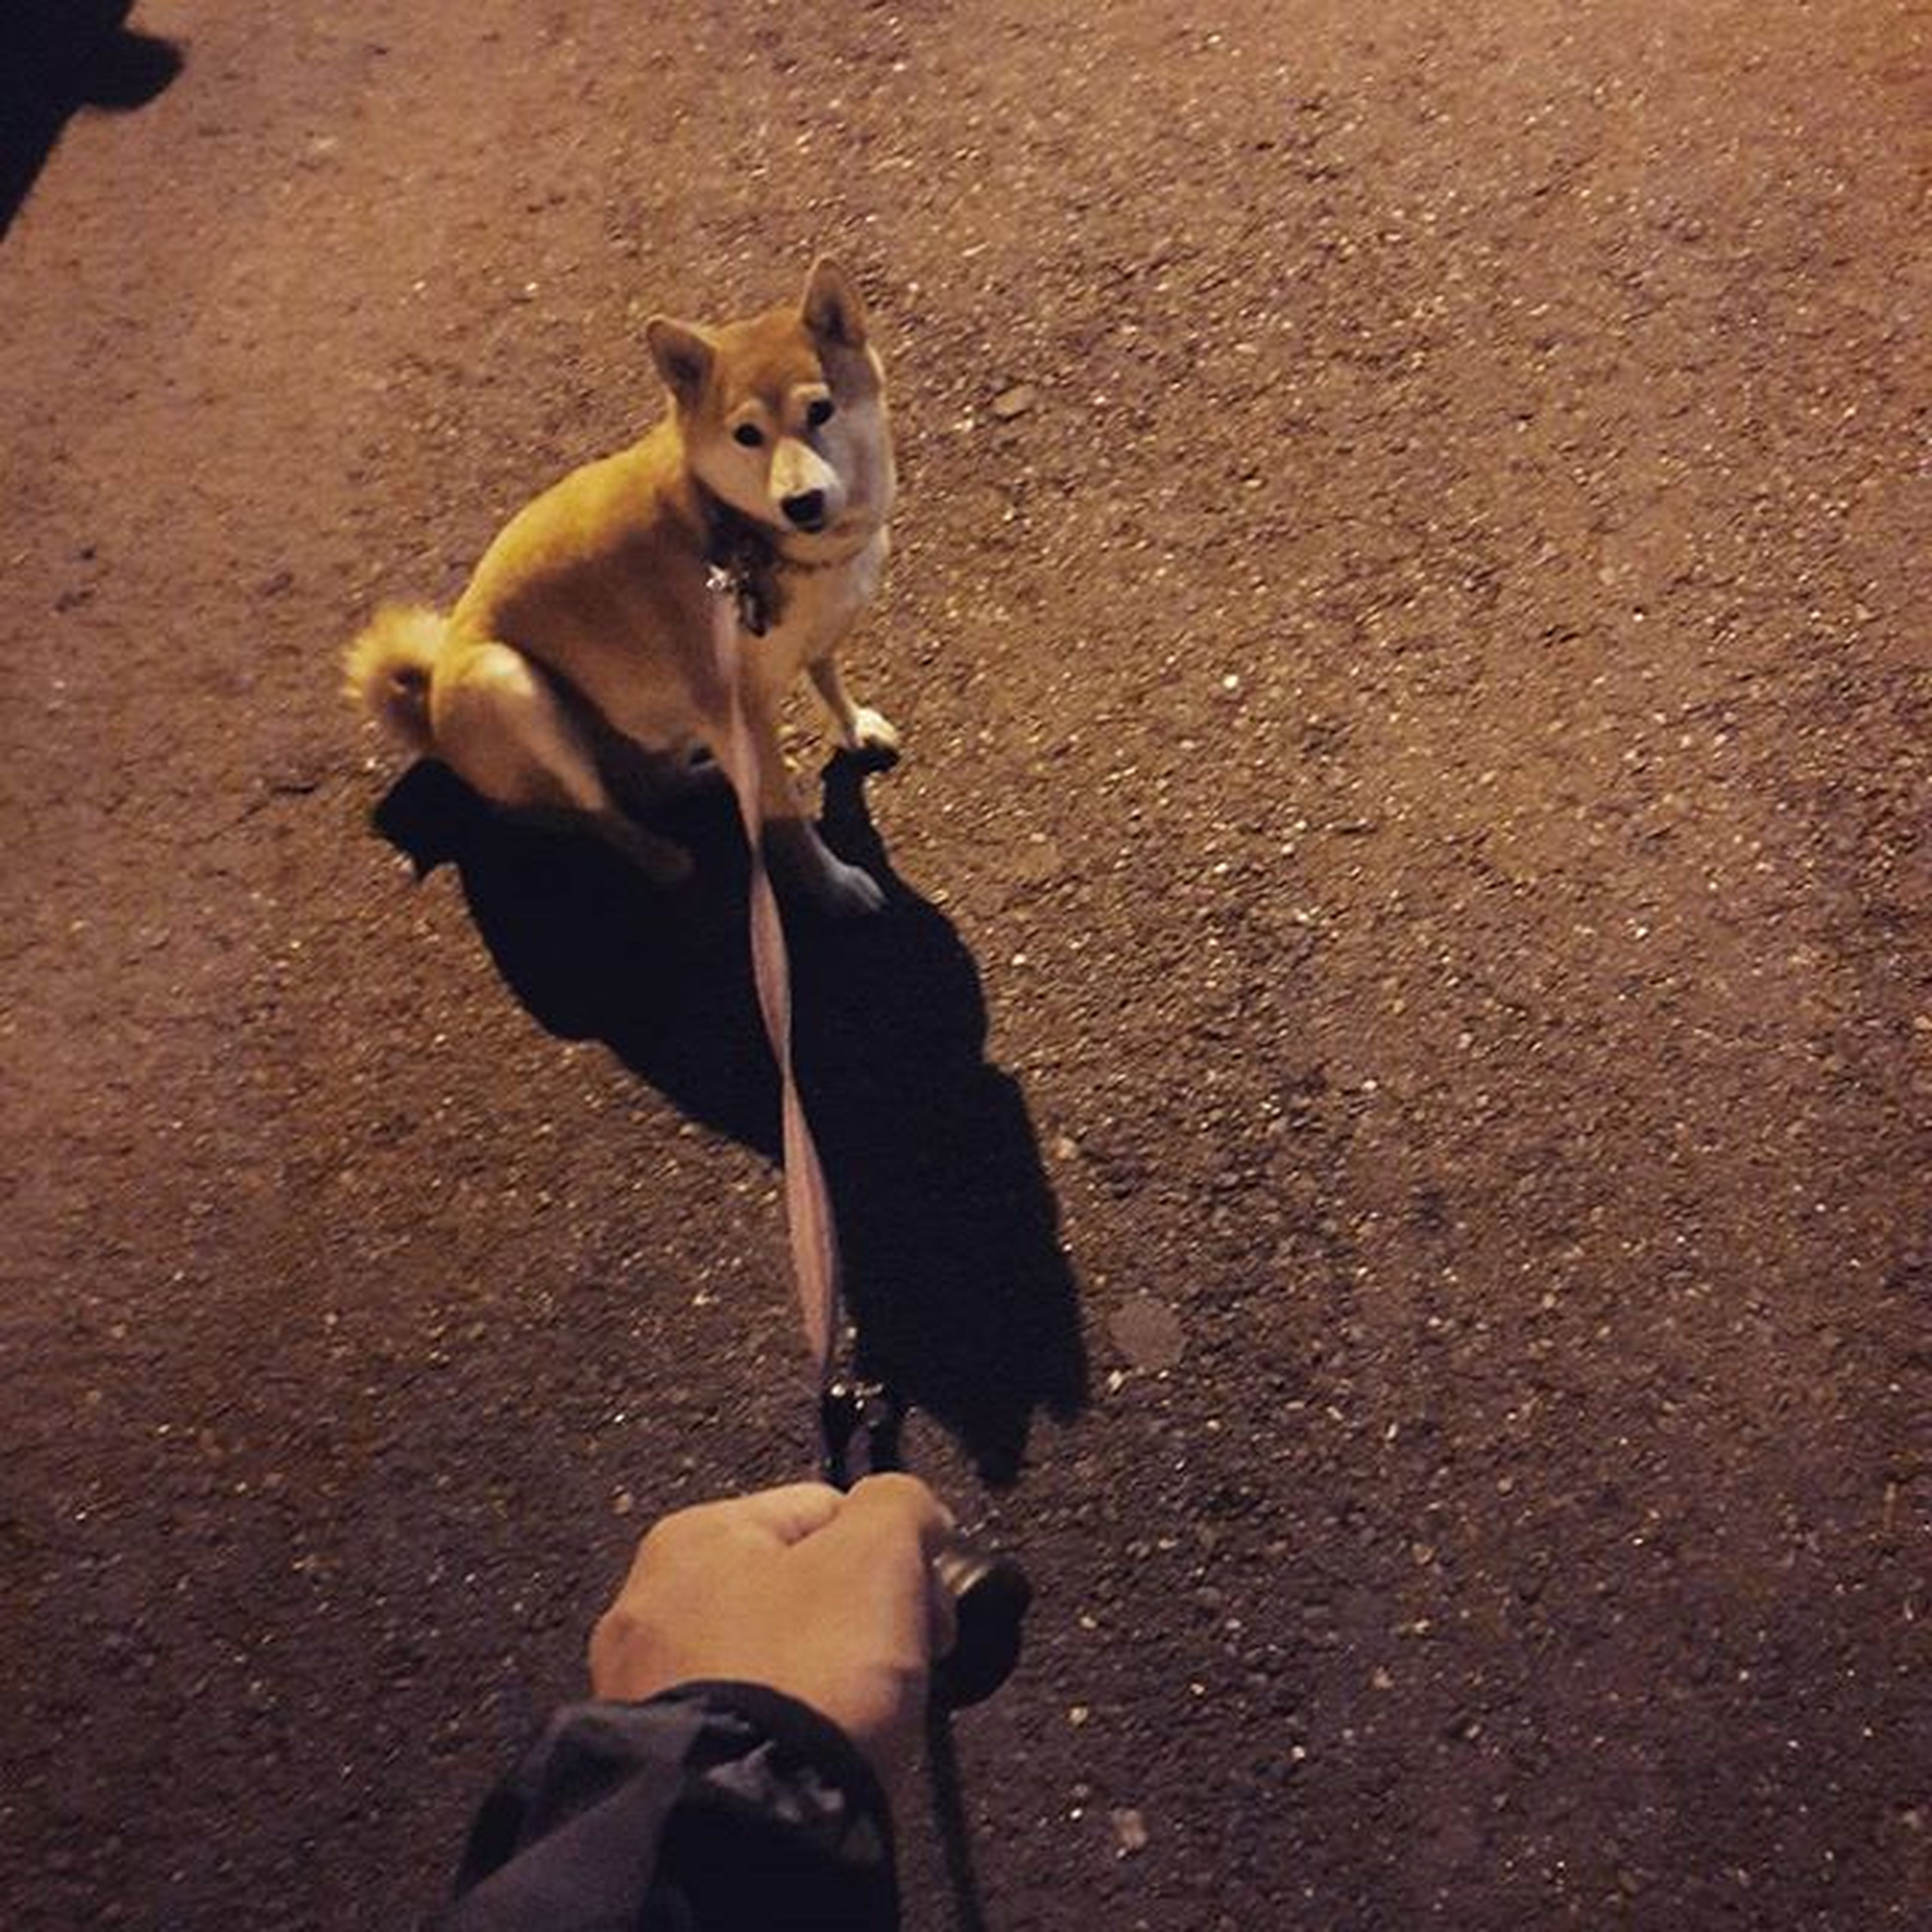 dog, pets, one animal, mammal, domestic animals, animal themes, personal perspective, lifestyles, high angle view, street, road, leisure activity, person, standing, shoe, low section, men, holding